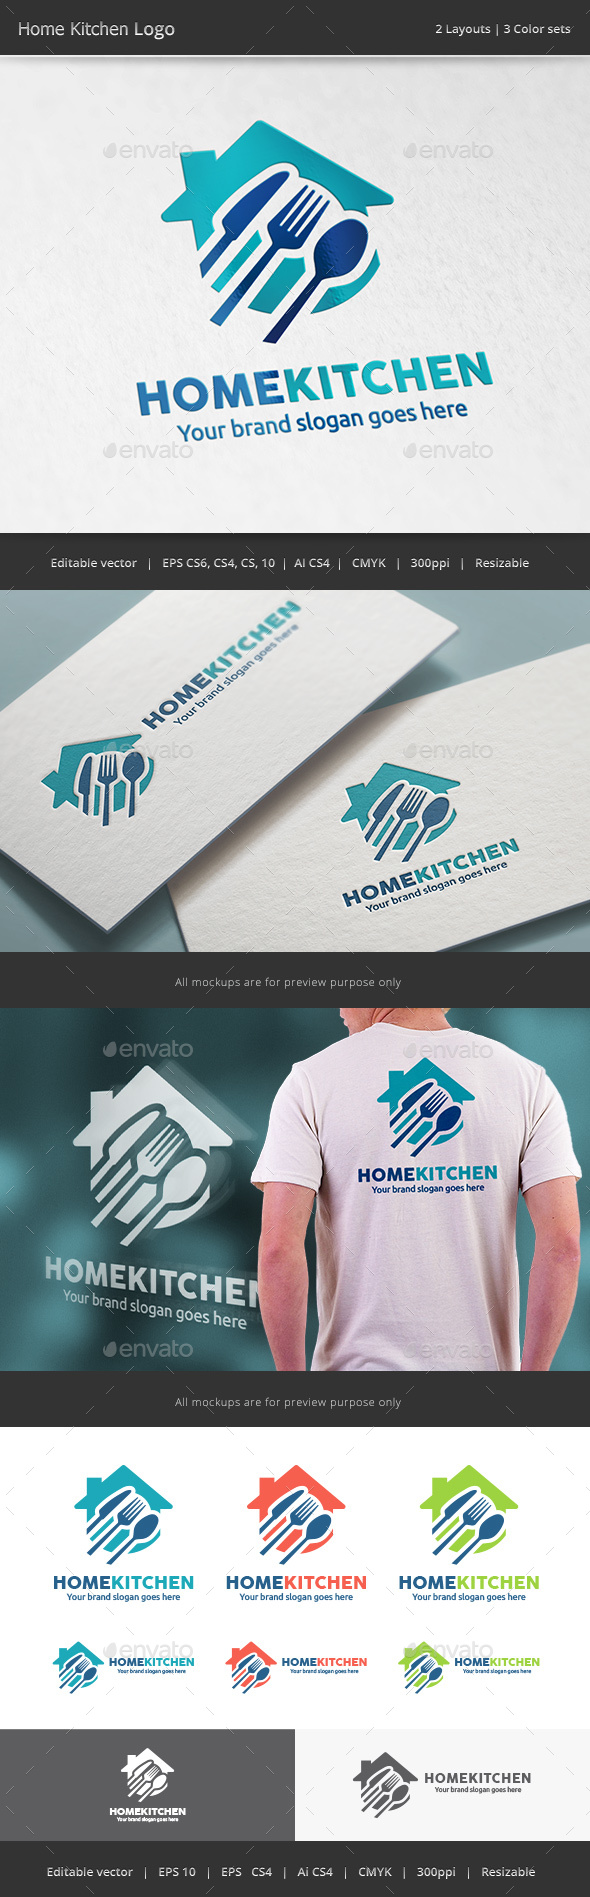 Home Kitchen Logo - Vector Abstract